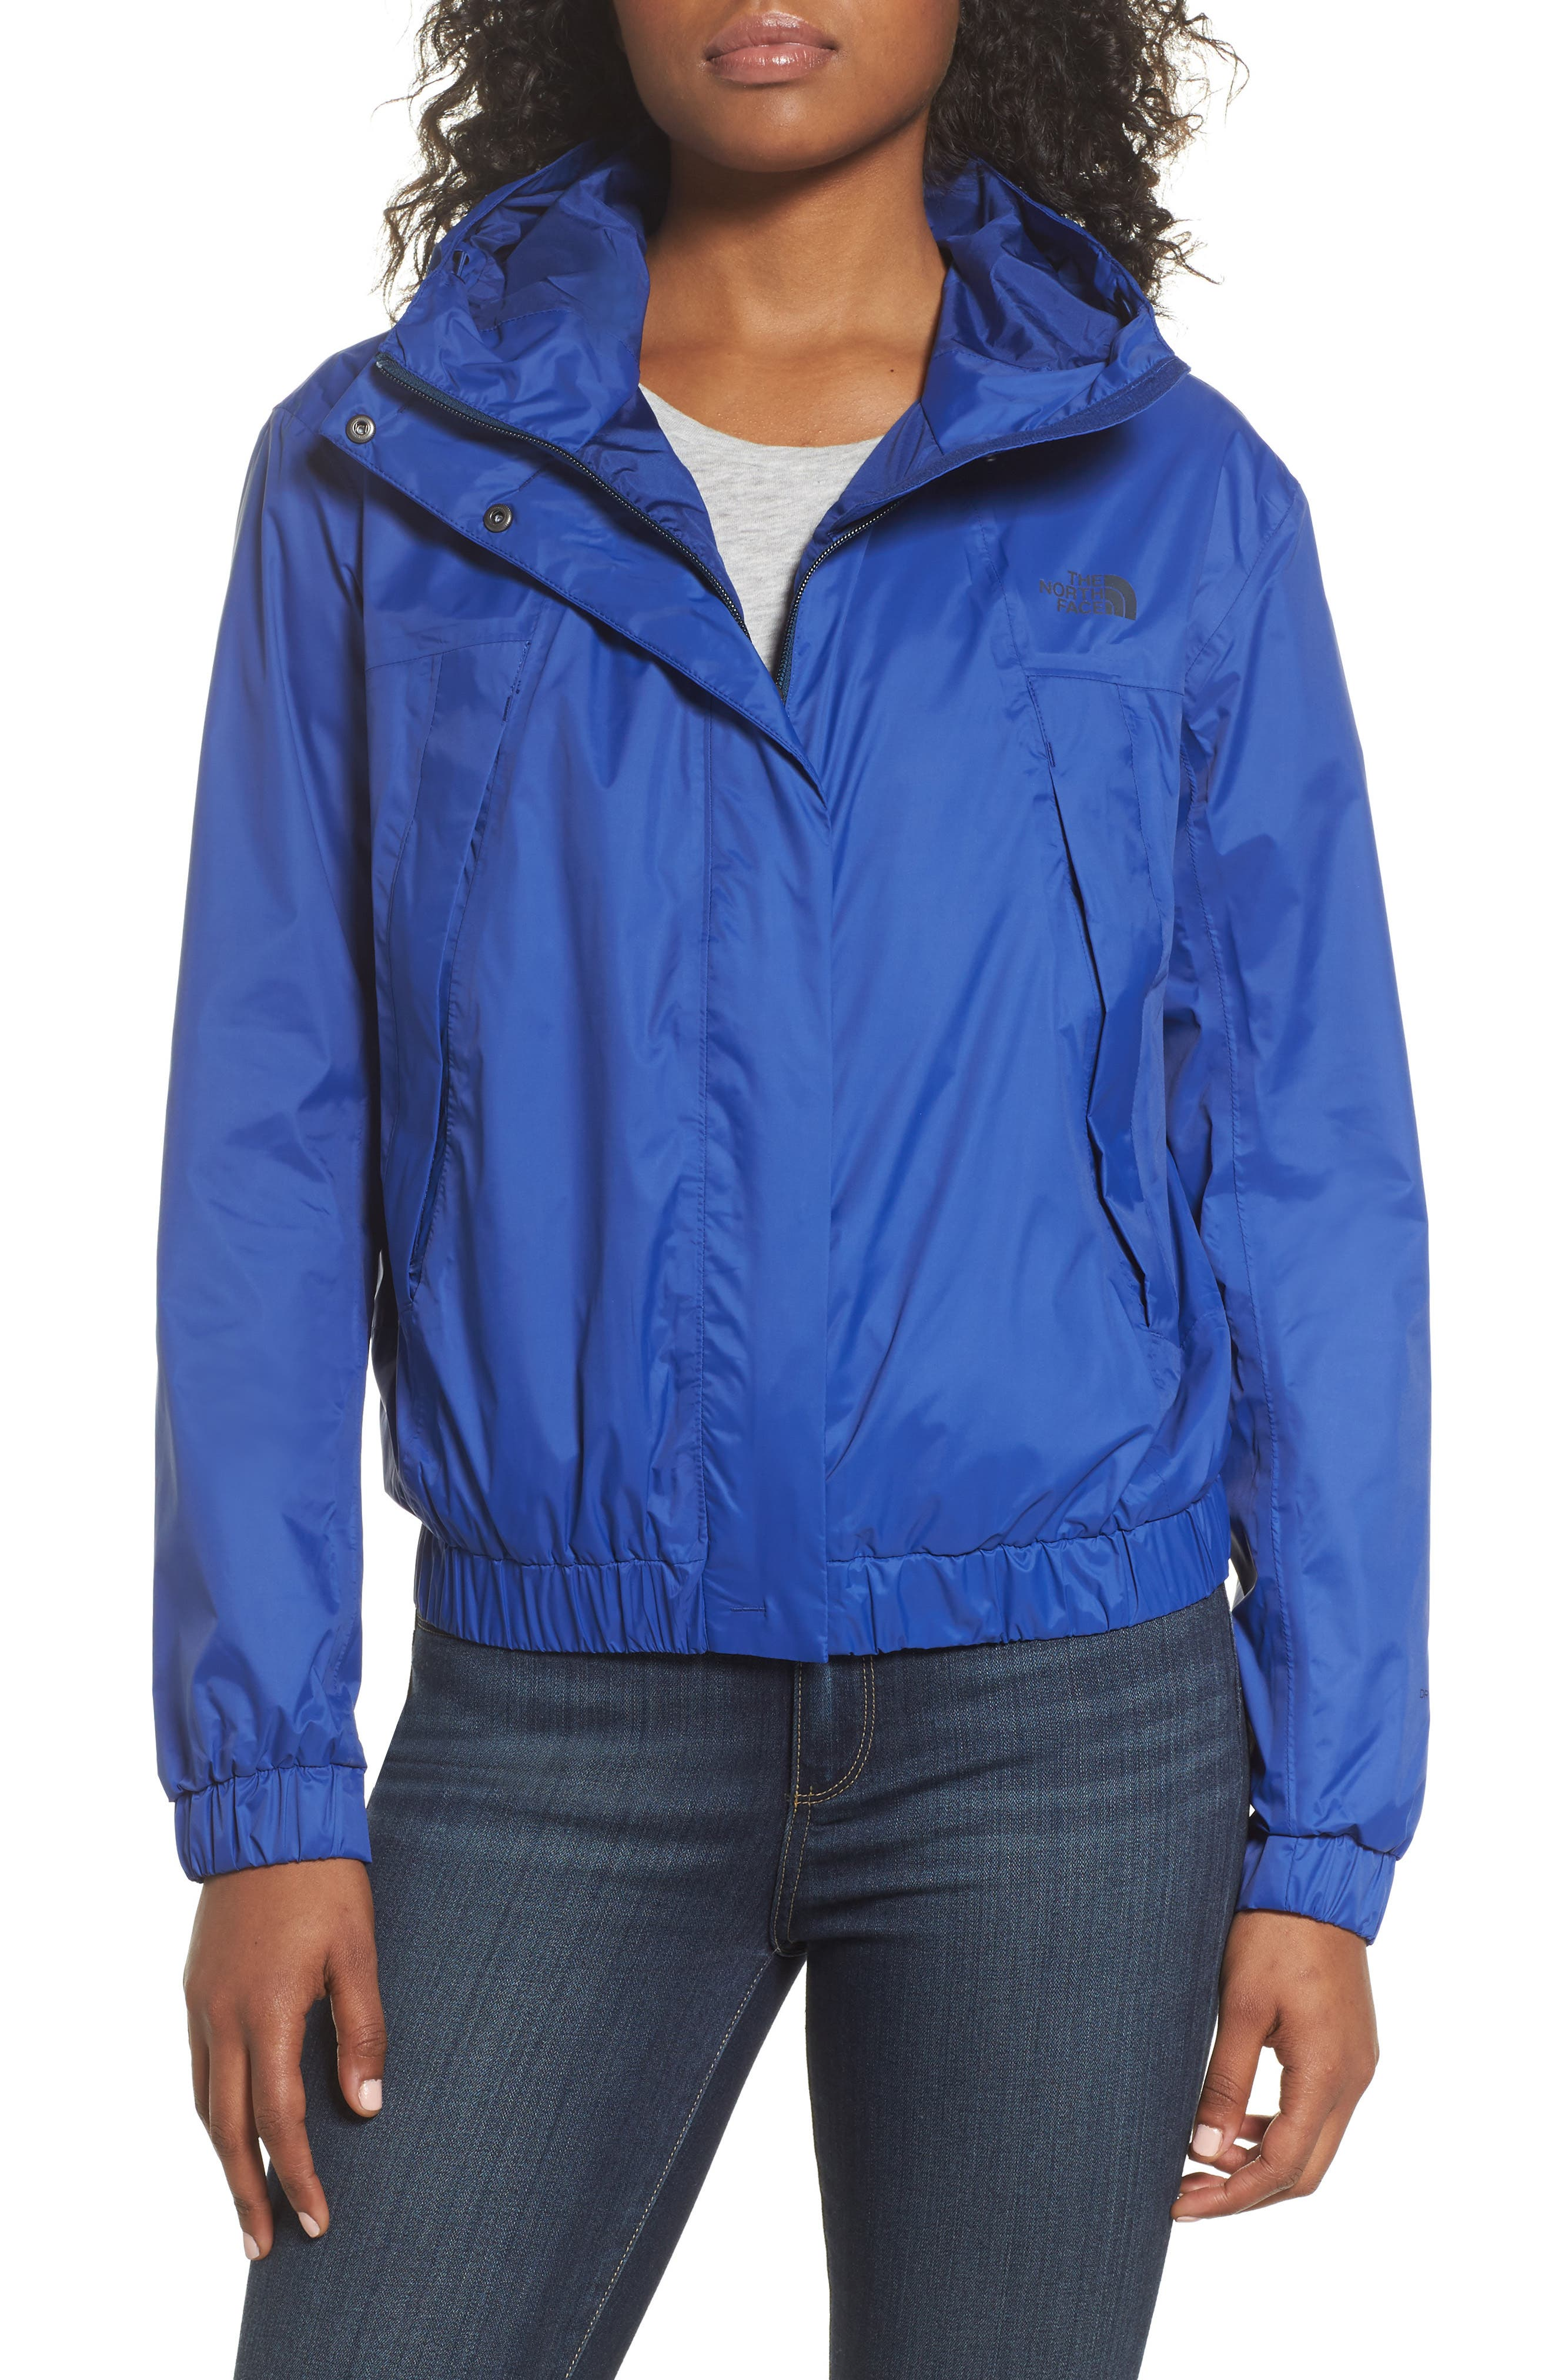 Precita Rain Jacket,                         Main,                         color, Sodalite Blue